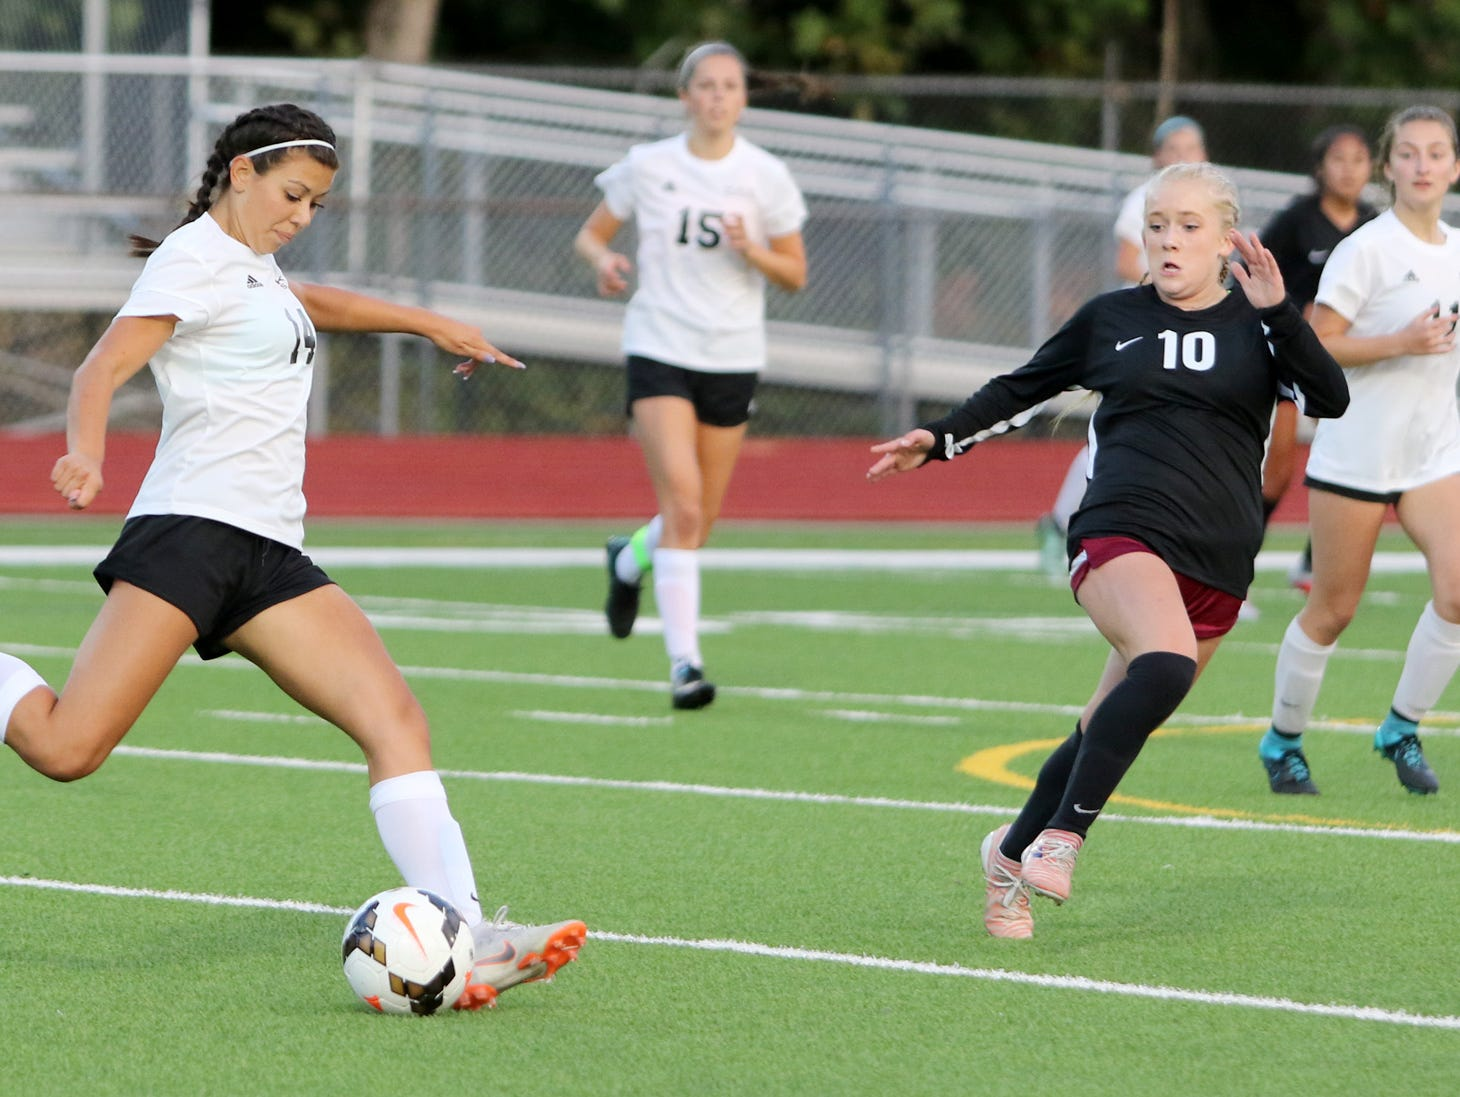 Klahowya's Hailey Connolly boots the ball past South Kitsap's Mackenzie Sinclair.